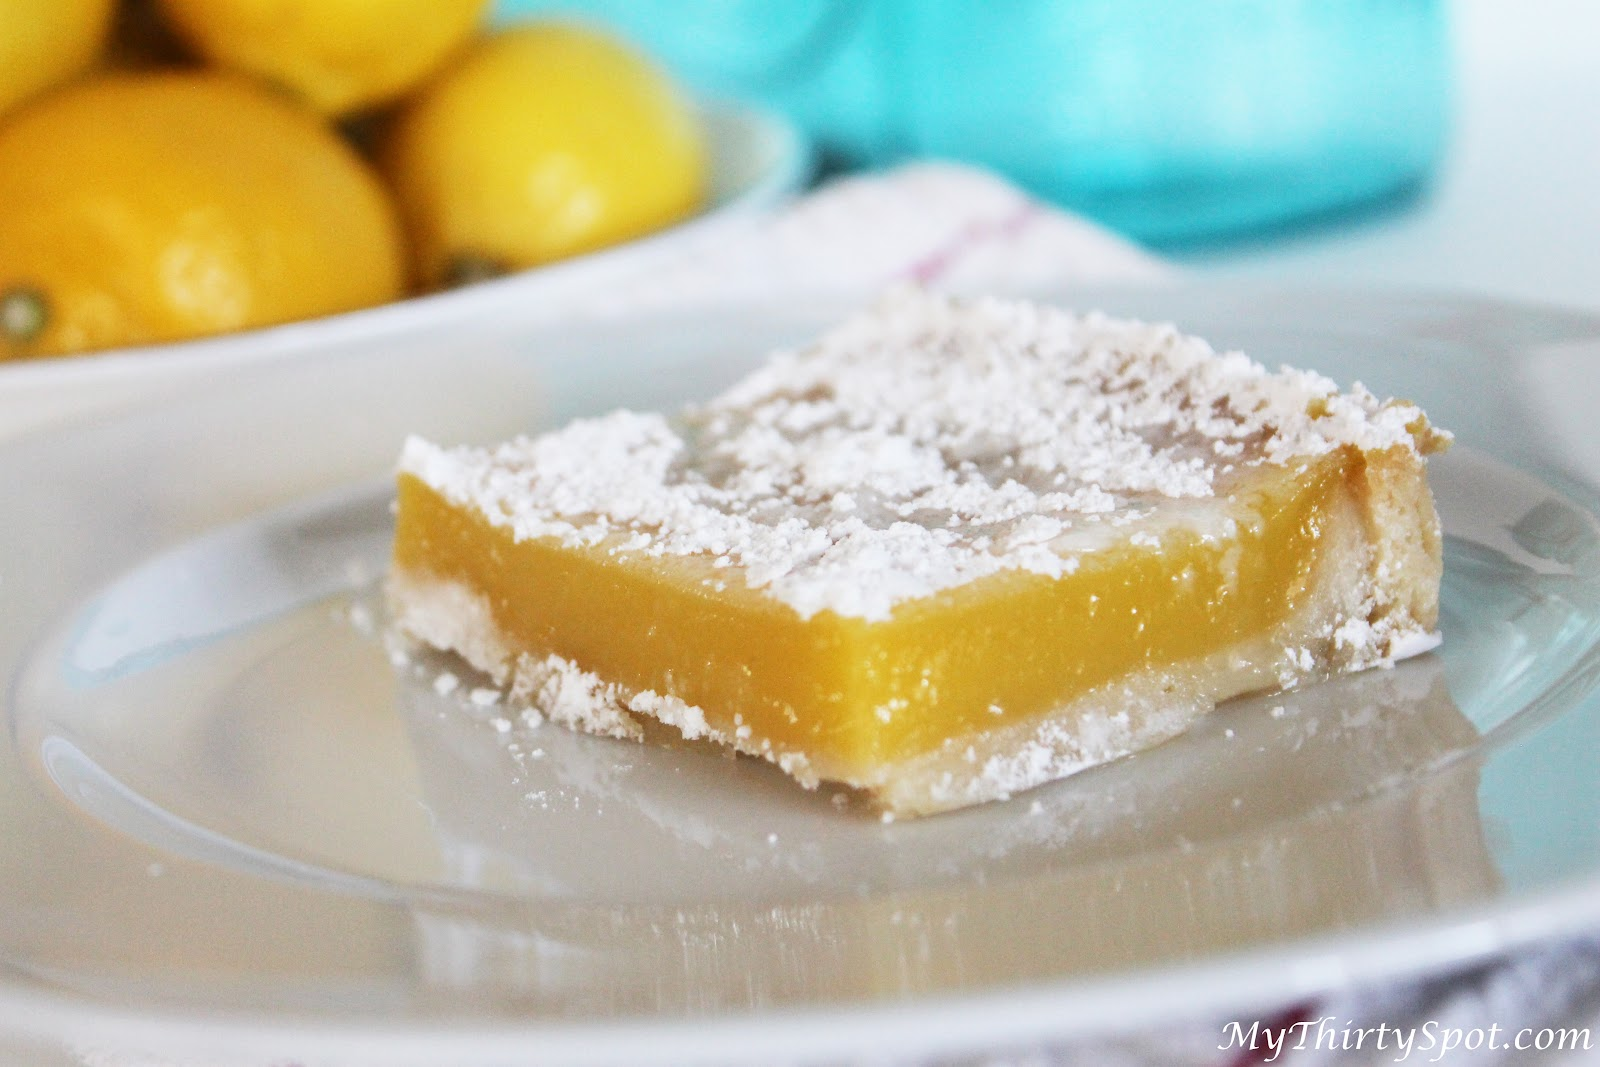 The Best Lemon Bars - Ready For Spring - MyThirtySpot